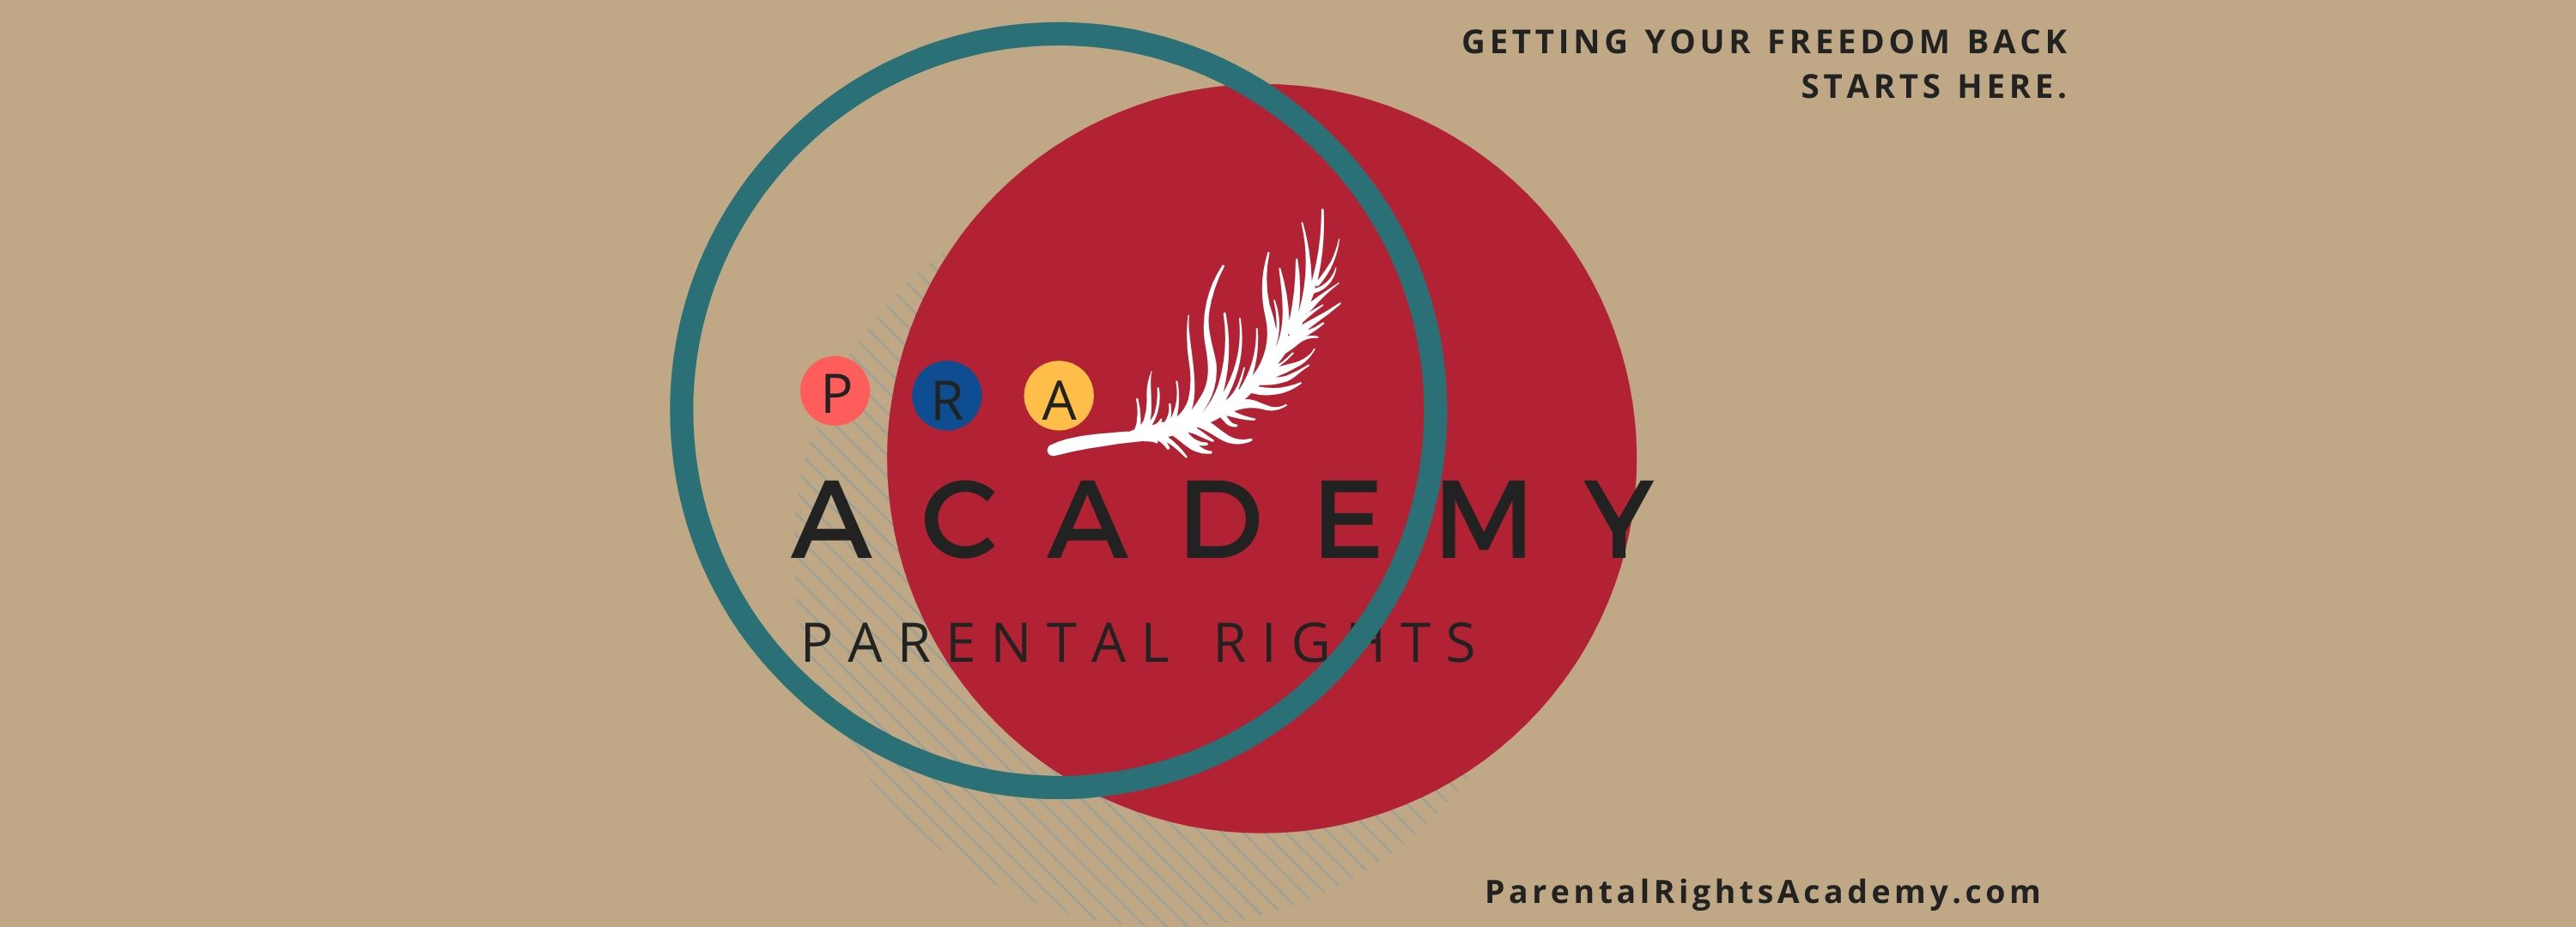 Parental Rights Academy